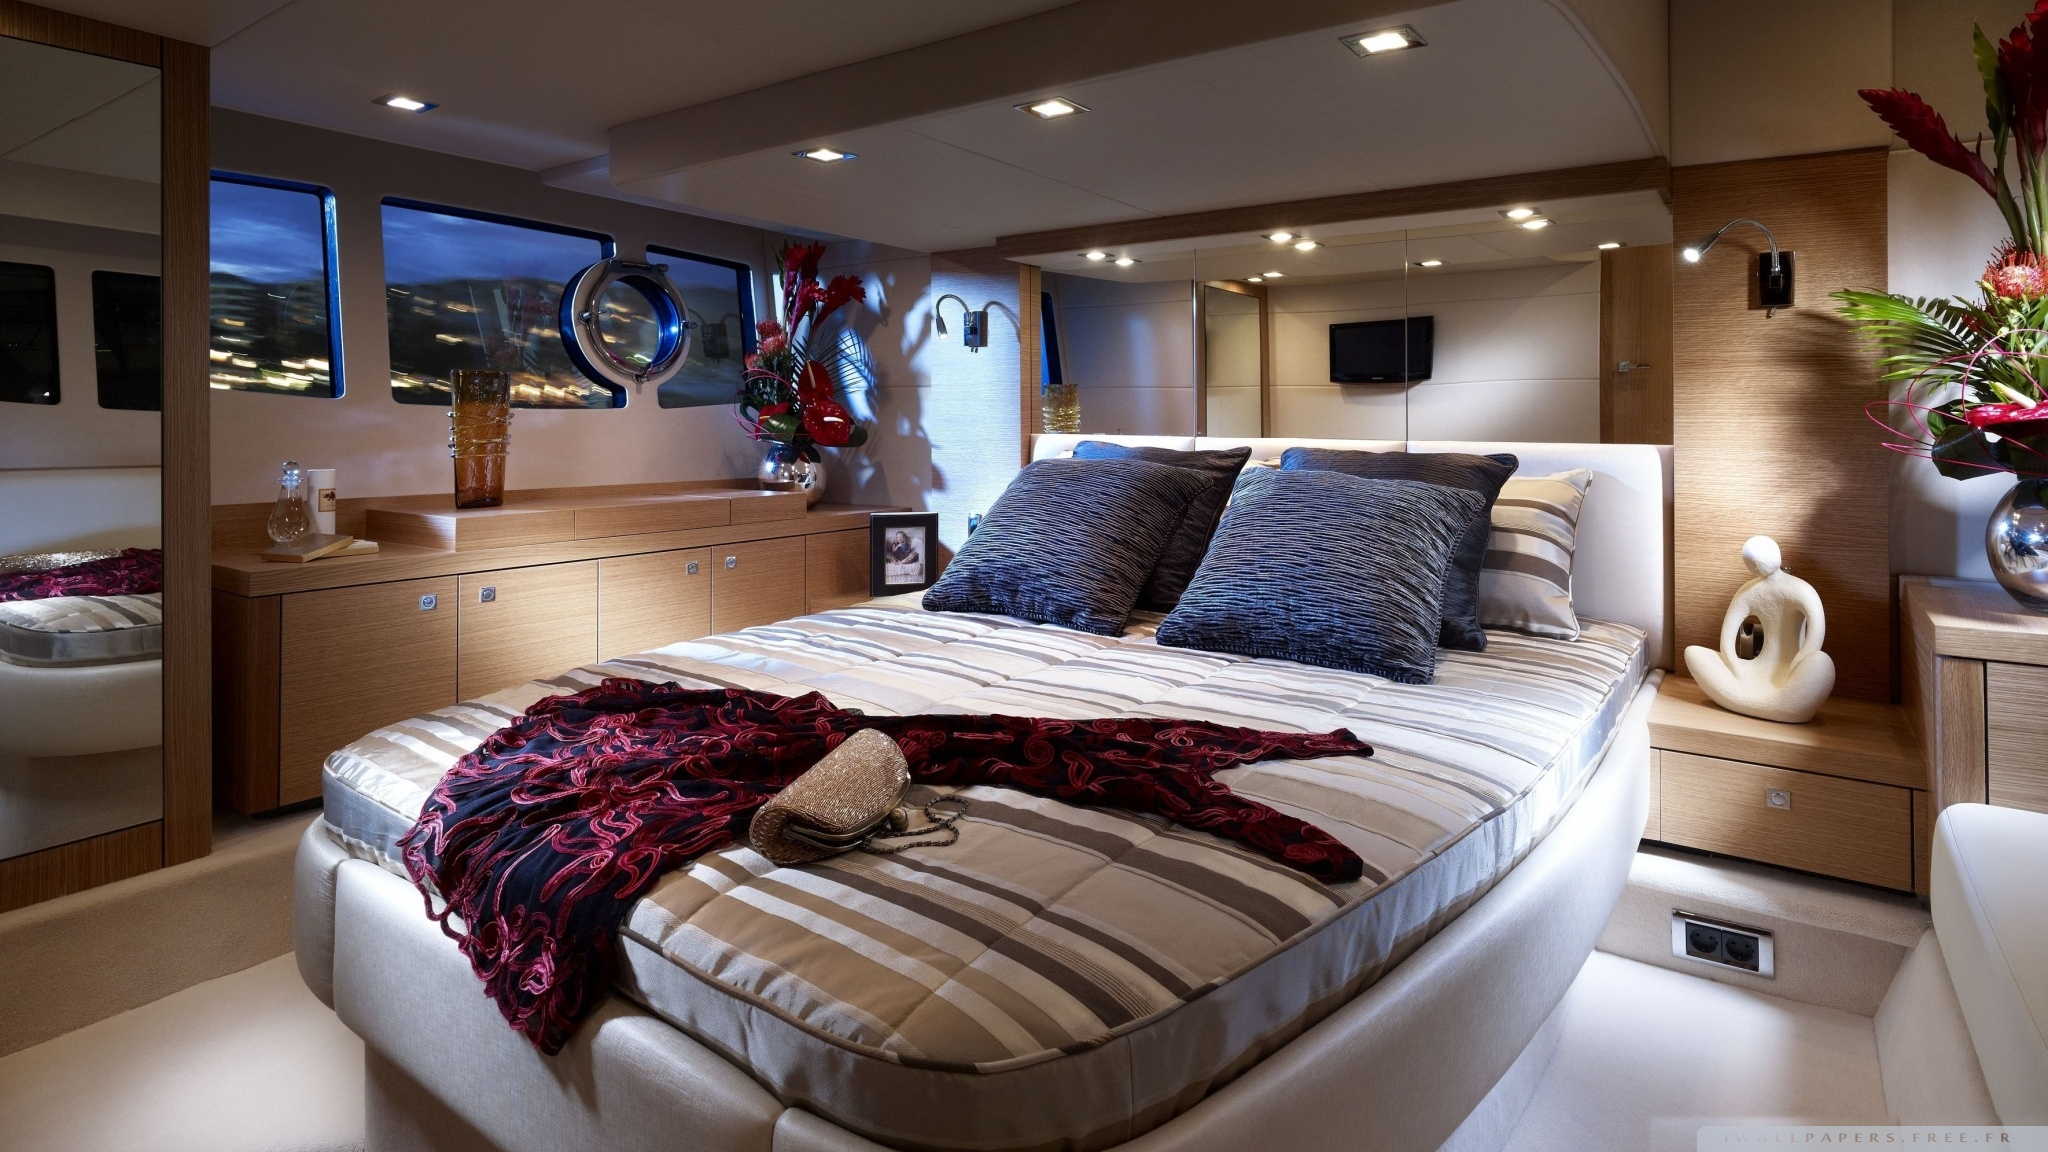 Yacht Bedroom Wallpaper 2048x1152 10 000 Fonds Décran Hd